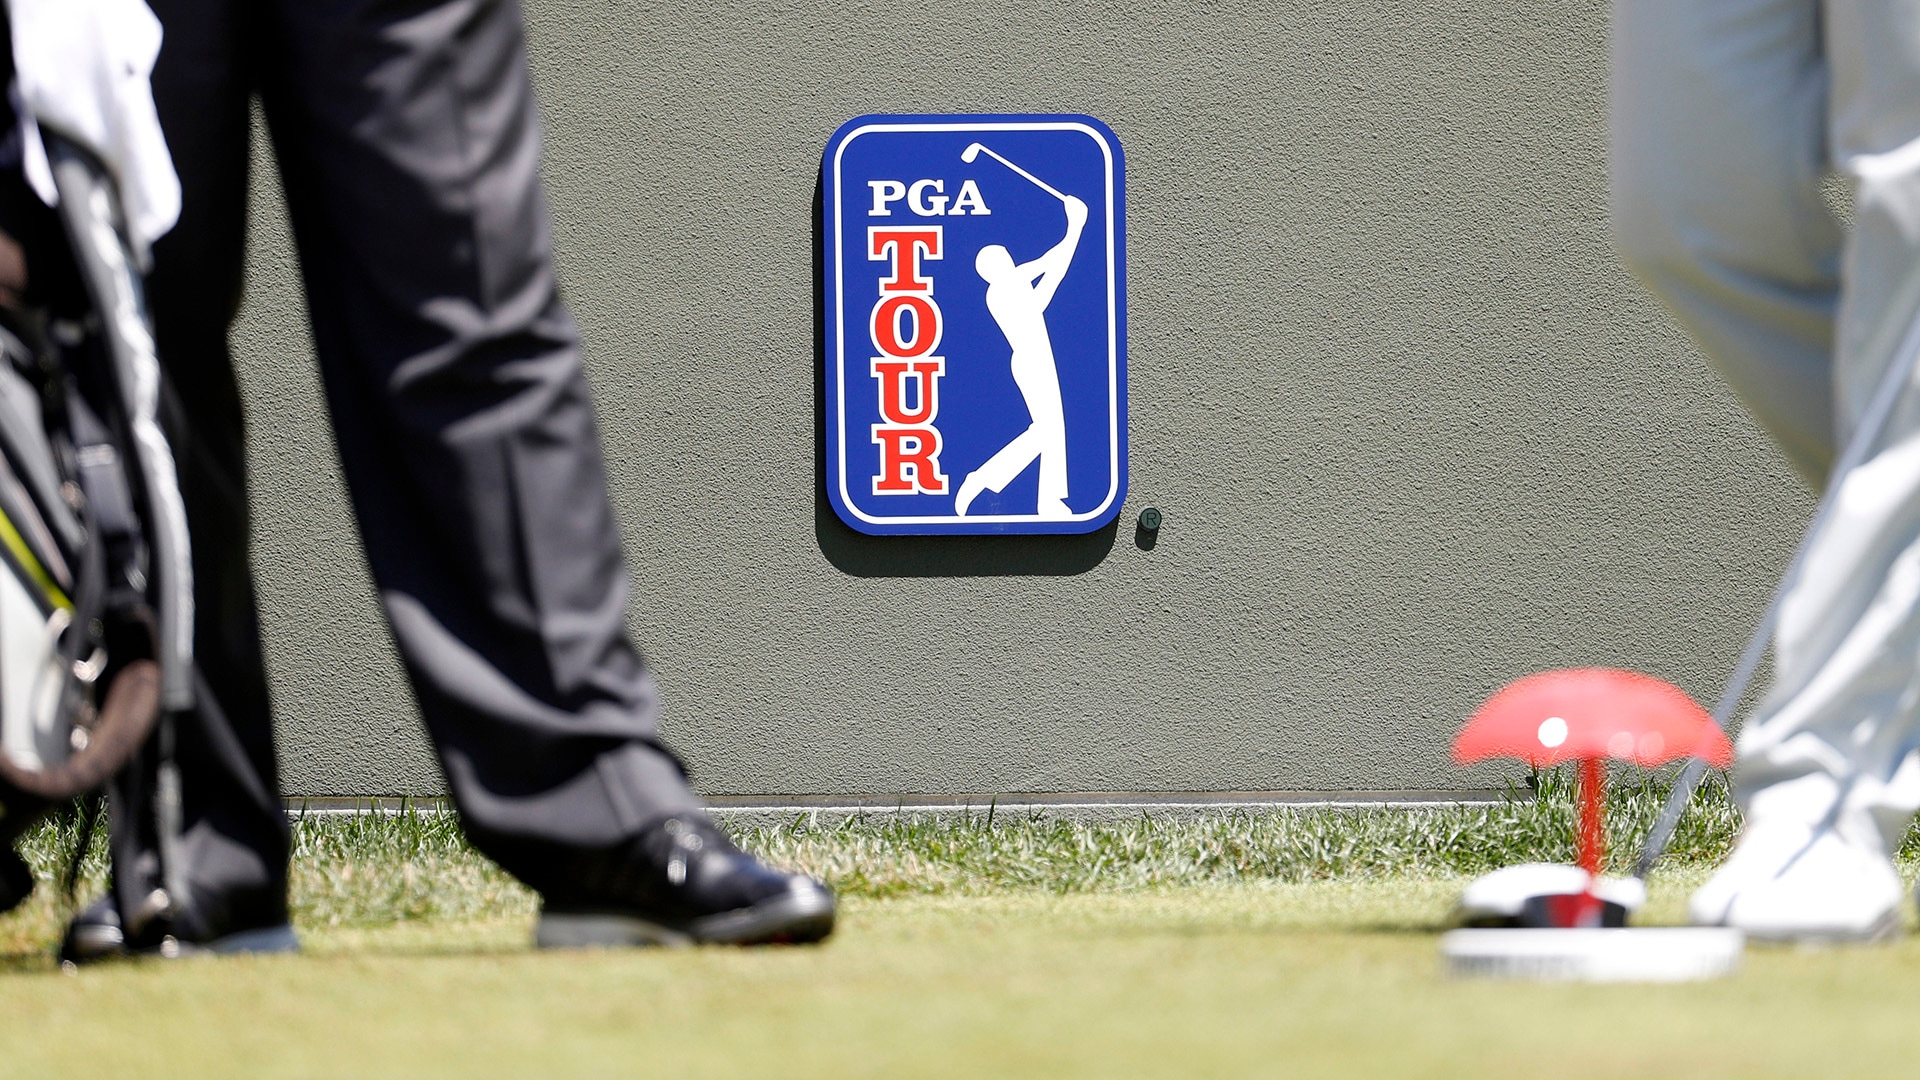 Cut Line: The PGA Tour's revamped schedule is already in full swinghere